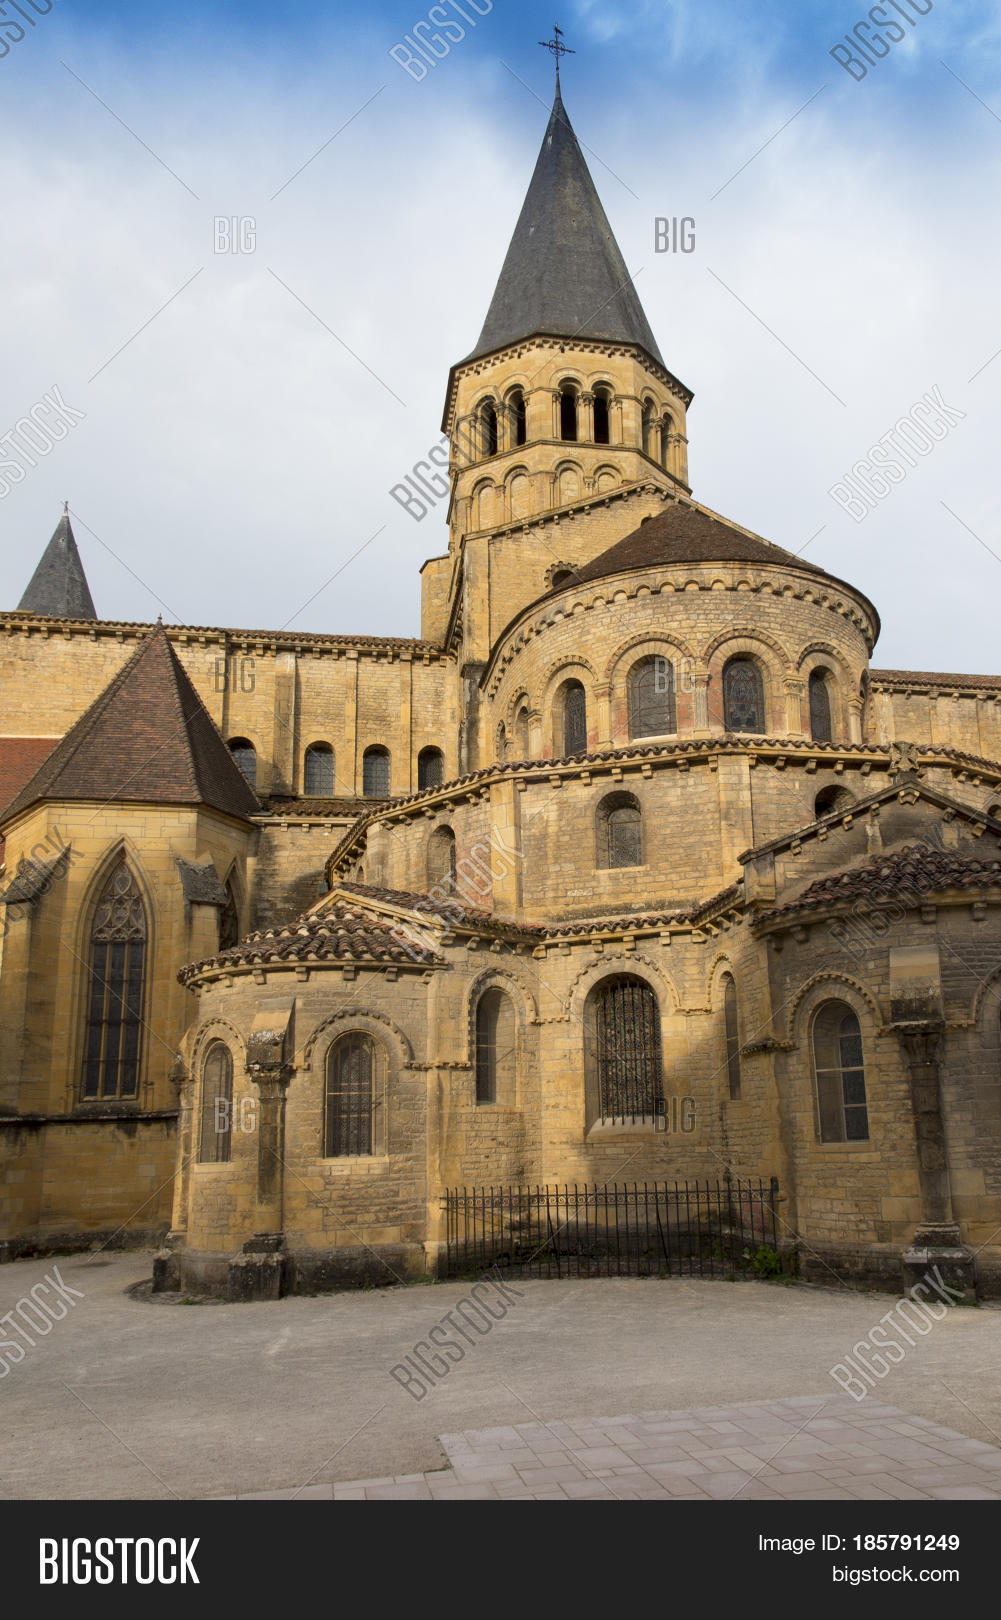 Architecte Paray Le Monial basilica du sacre image & photo (free trial) | bigstock